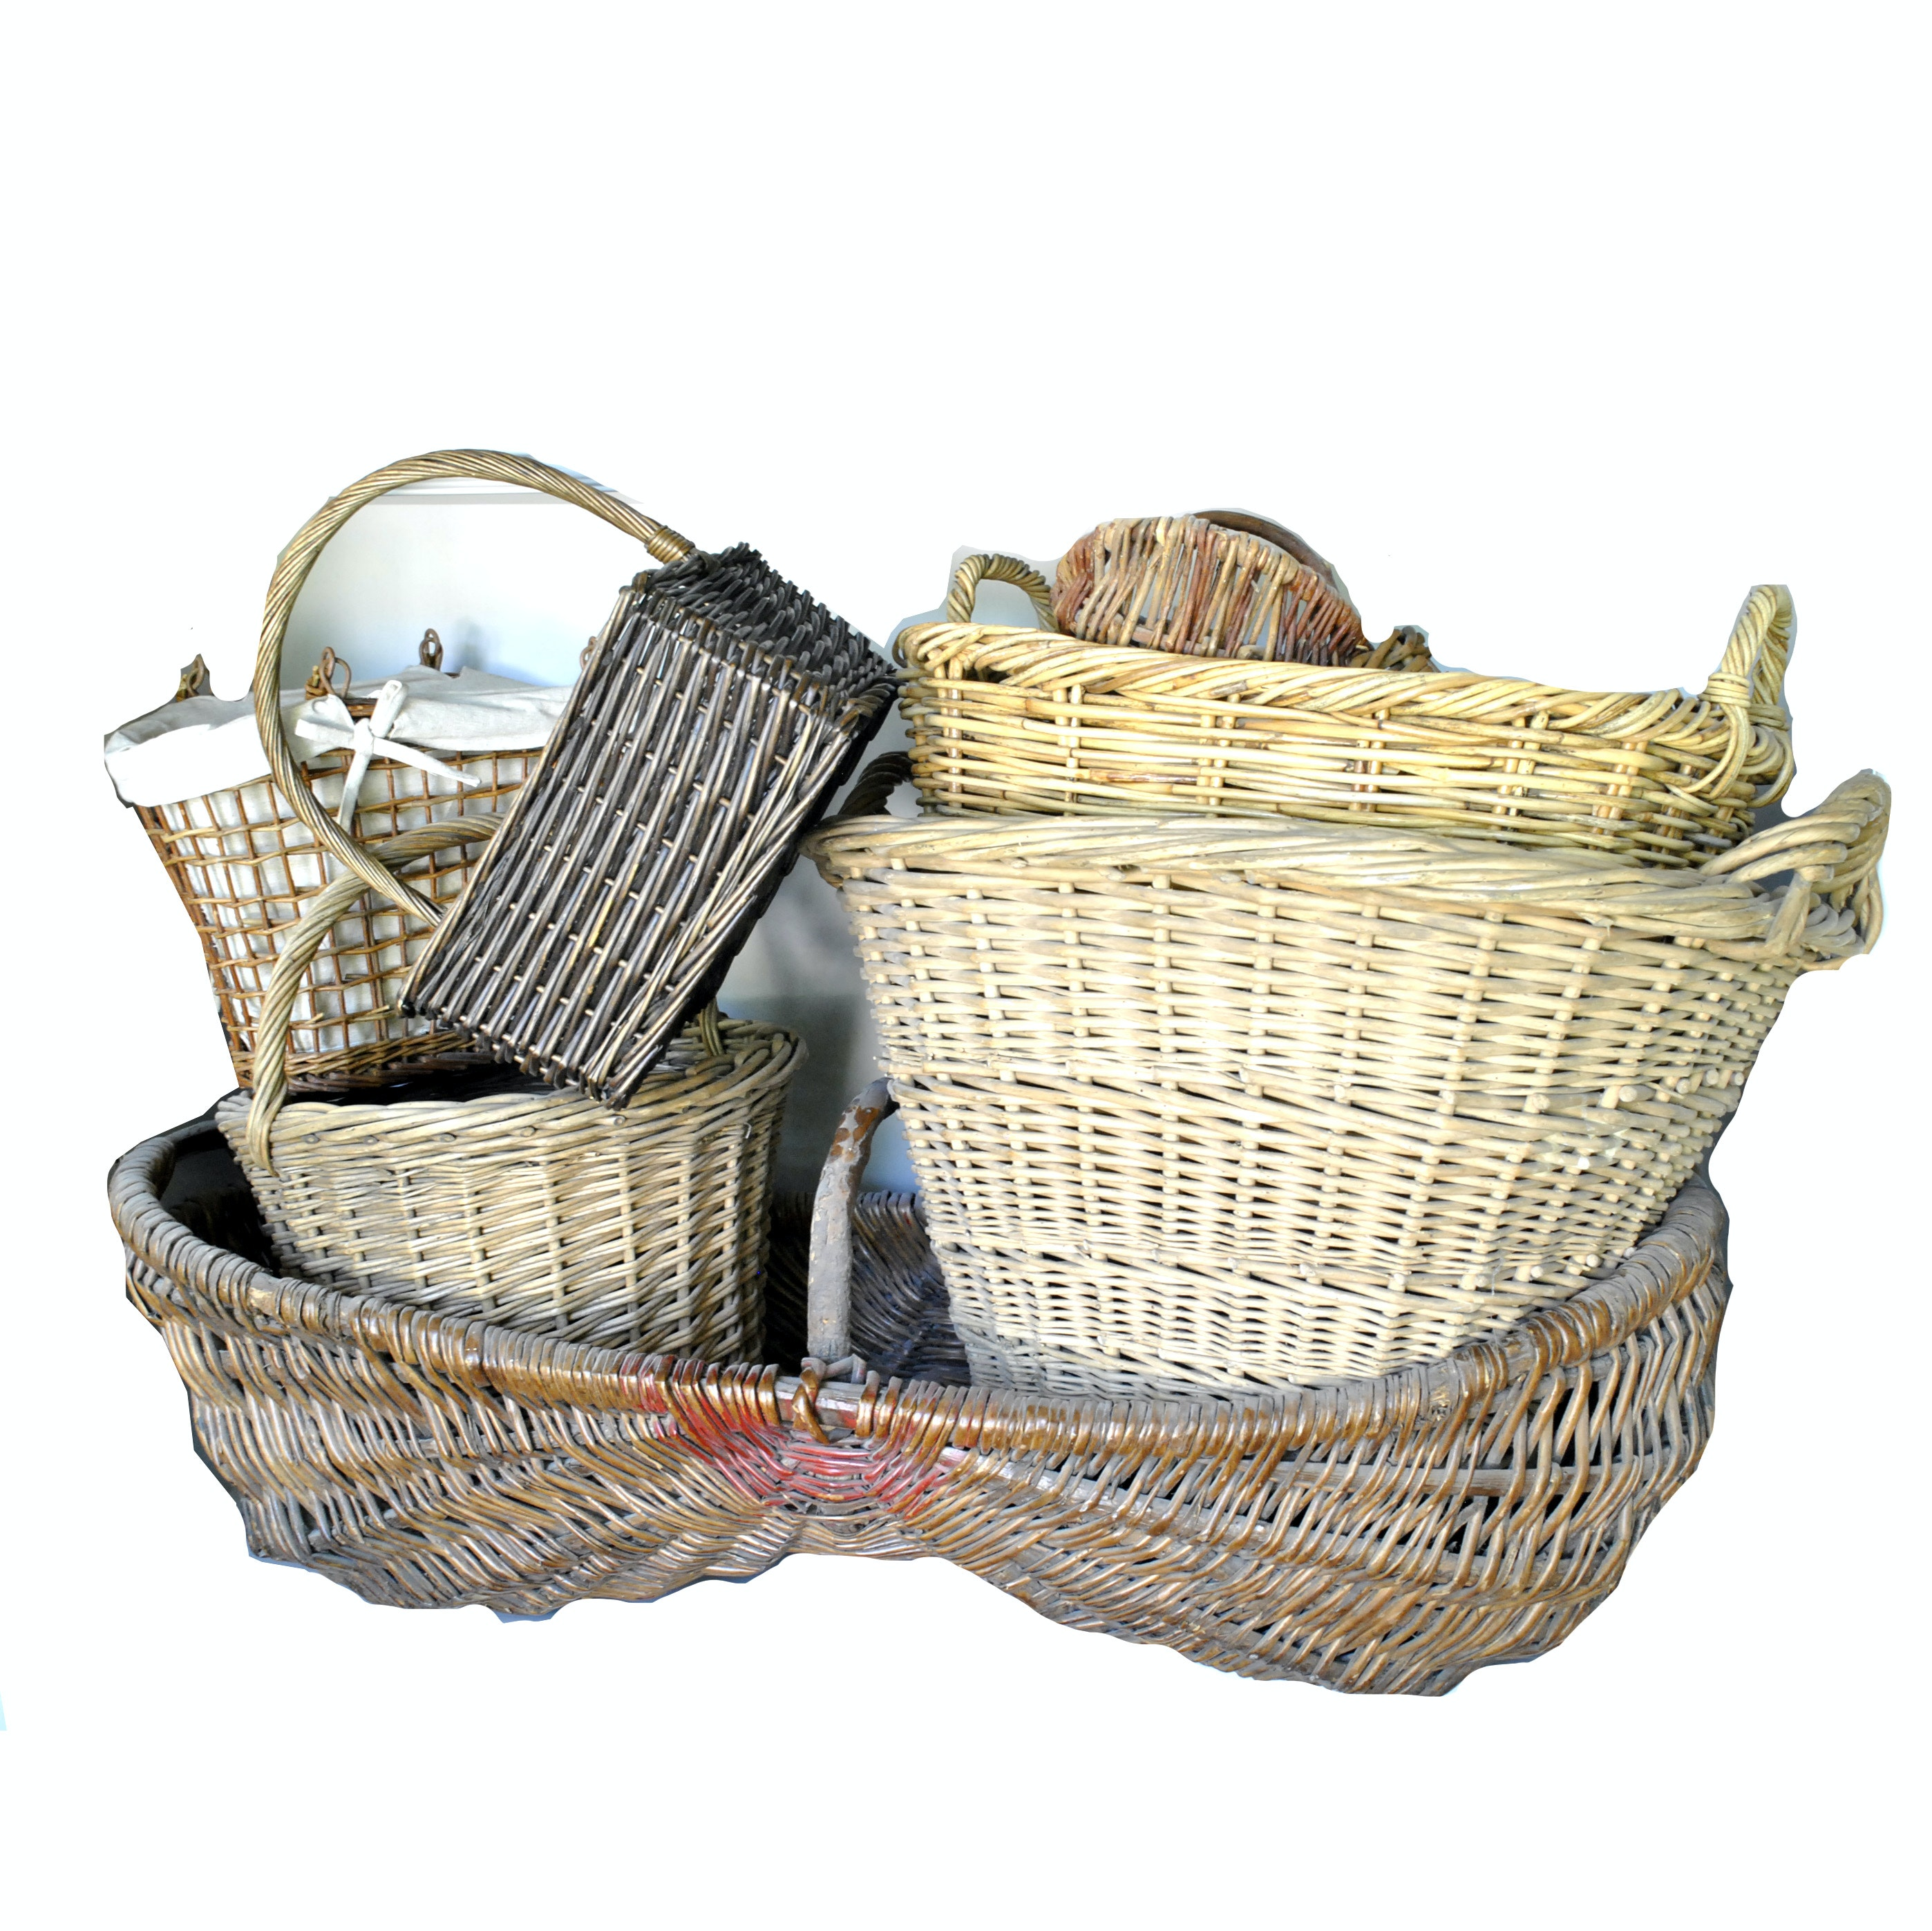 Grouping of Baskets